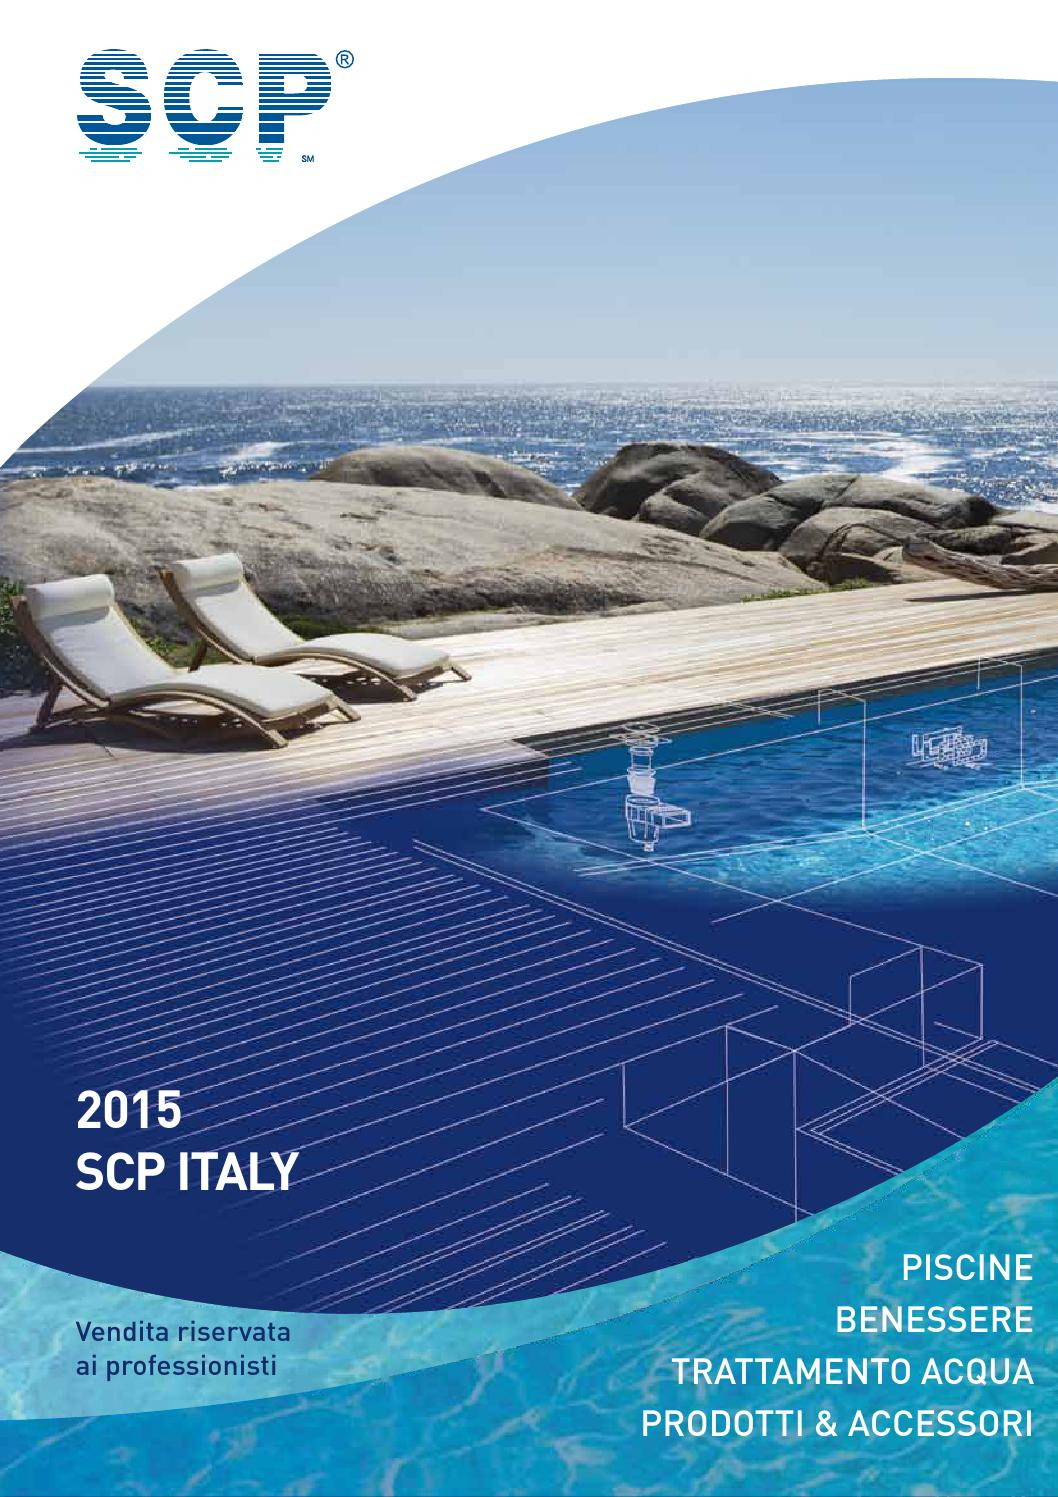 2015 SCP ITALY by WR POOL - issuu